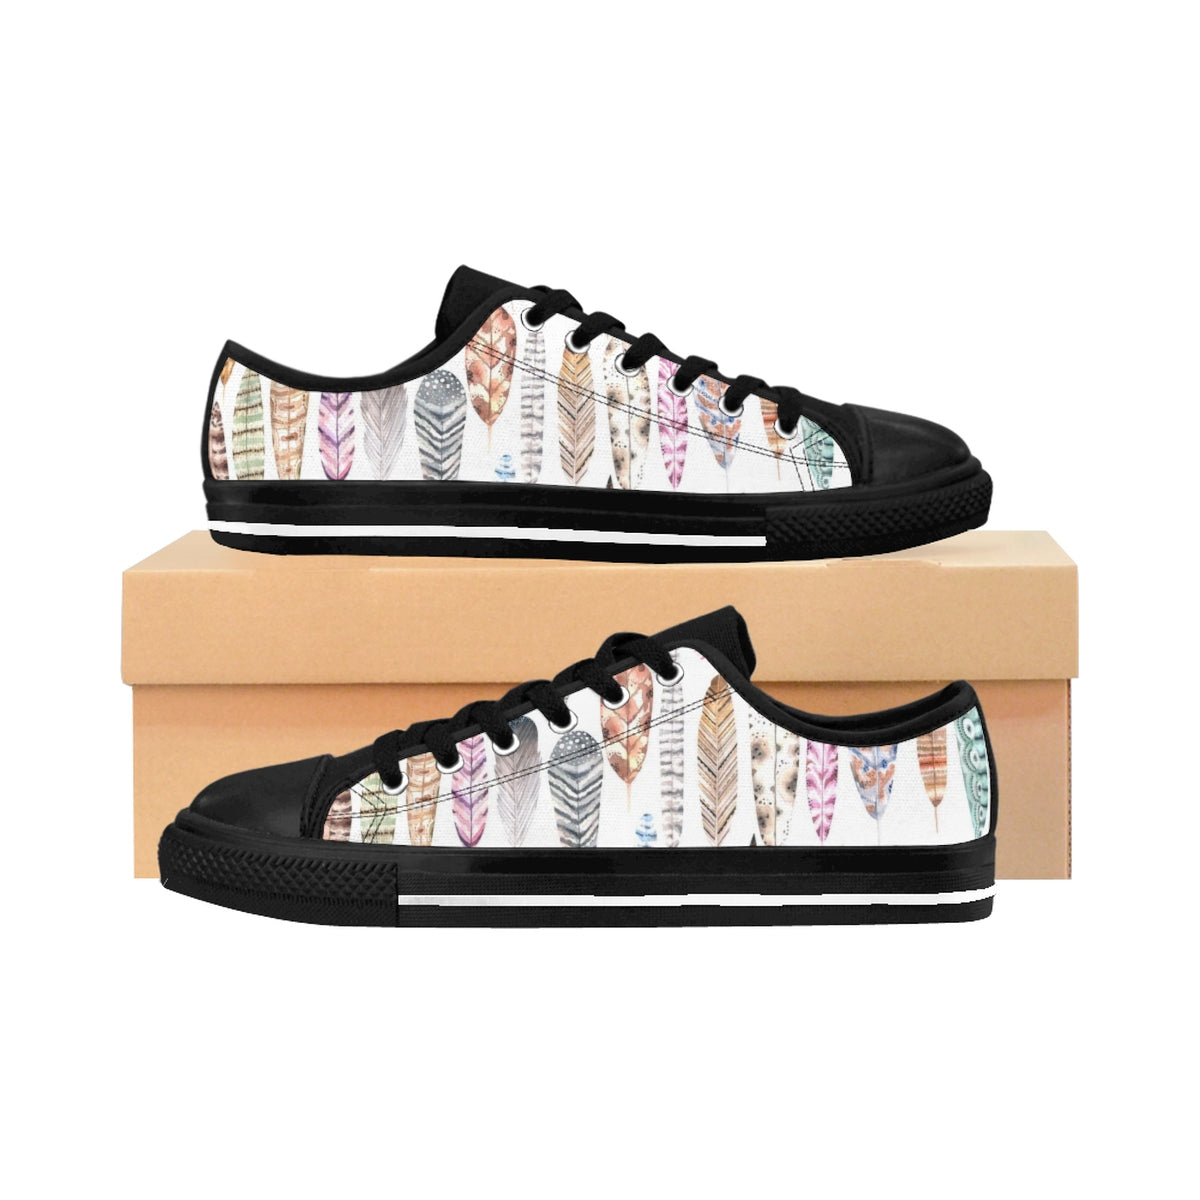 Women's Sneakers - Soar High Fun - Feathers